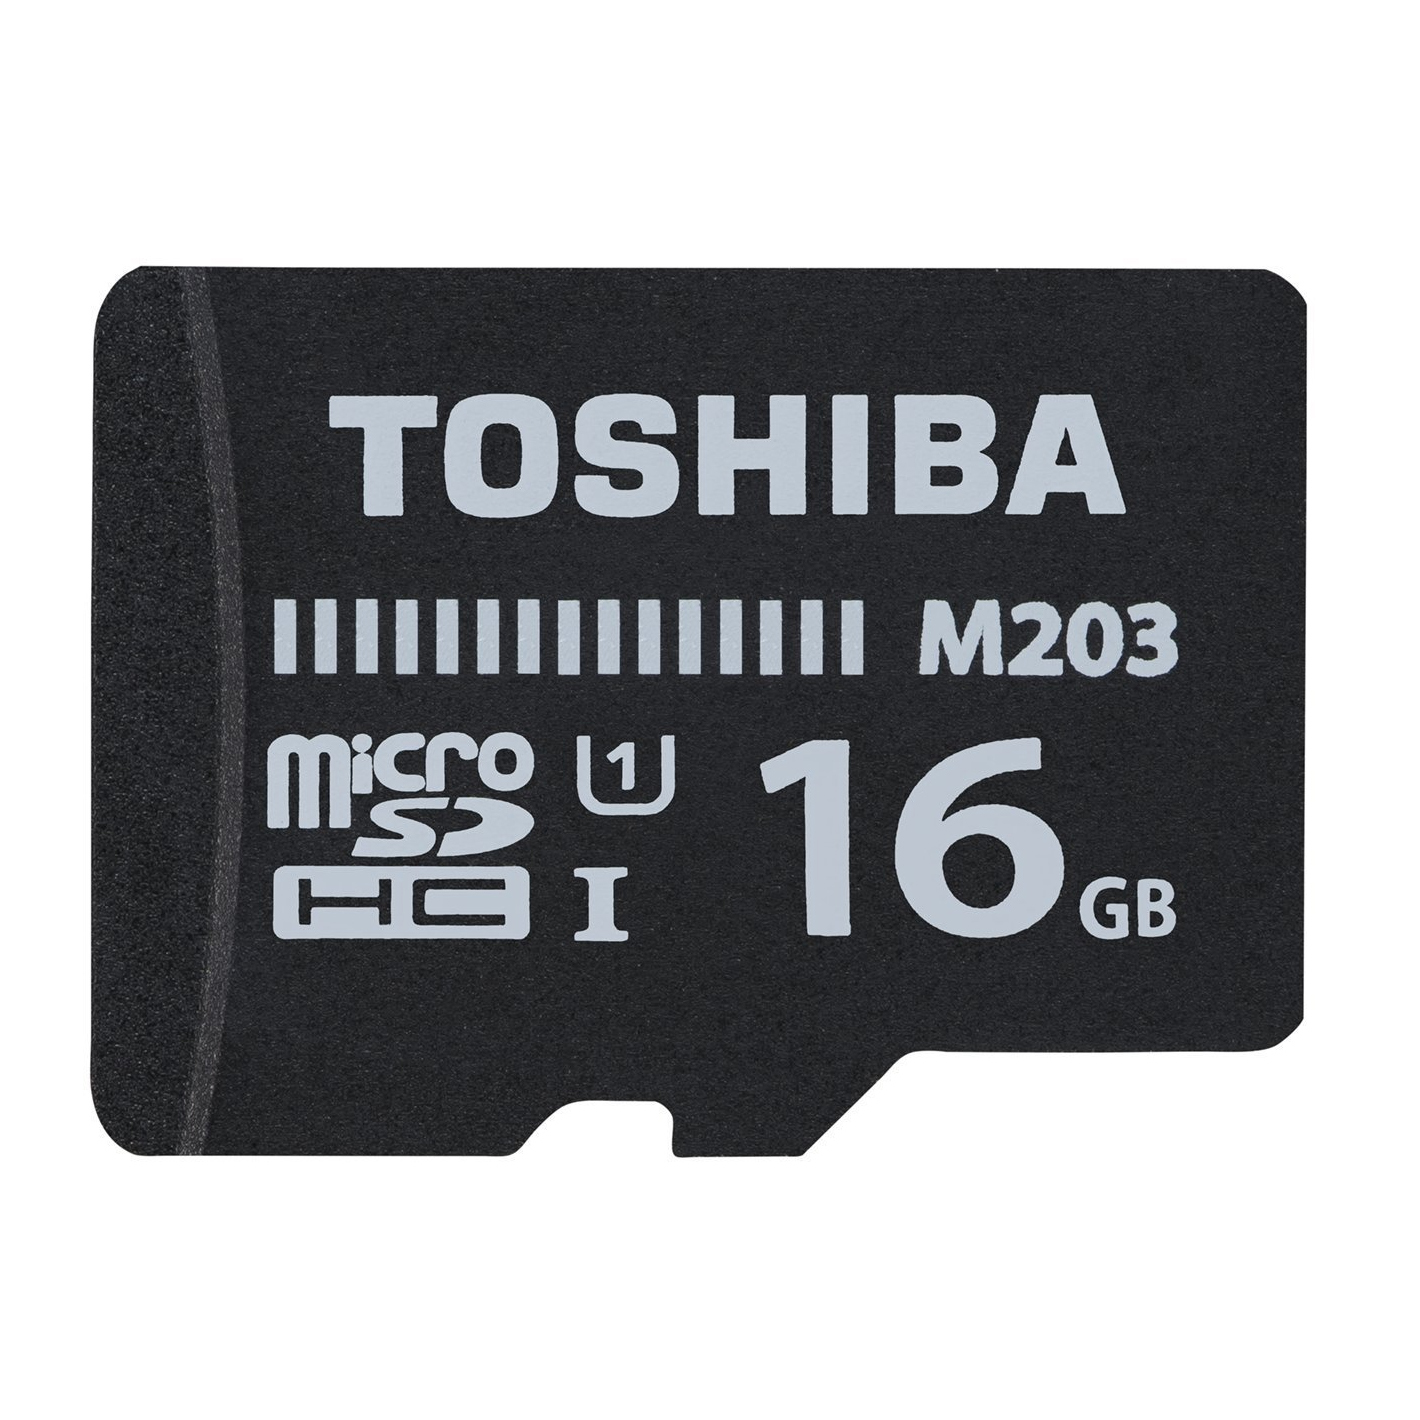 Flash Memory Card High Speed M203 16GB Class 10 Sdhc Uhs-i With Adapter Black